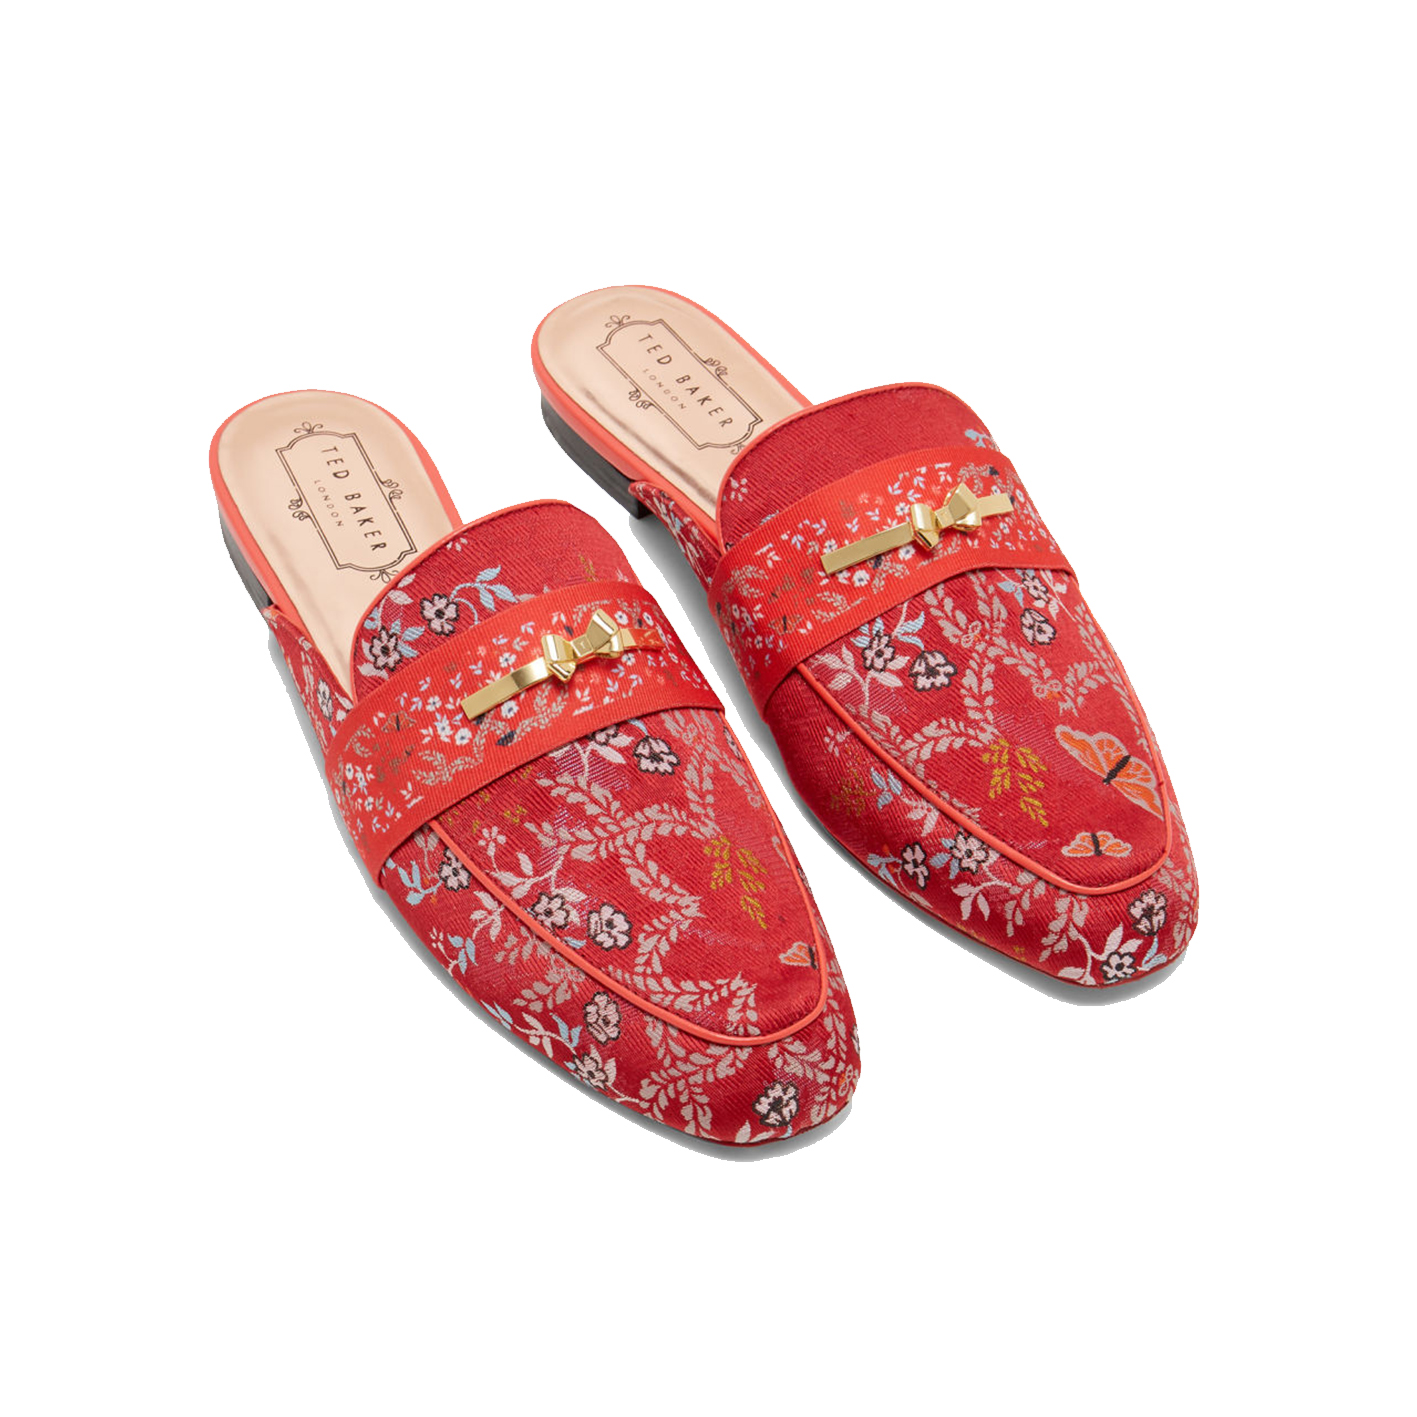 Backless Loafers in Kyoto Garden, £78, Ted Baker